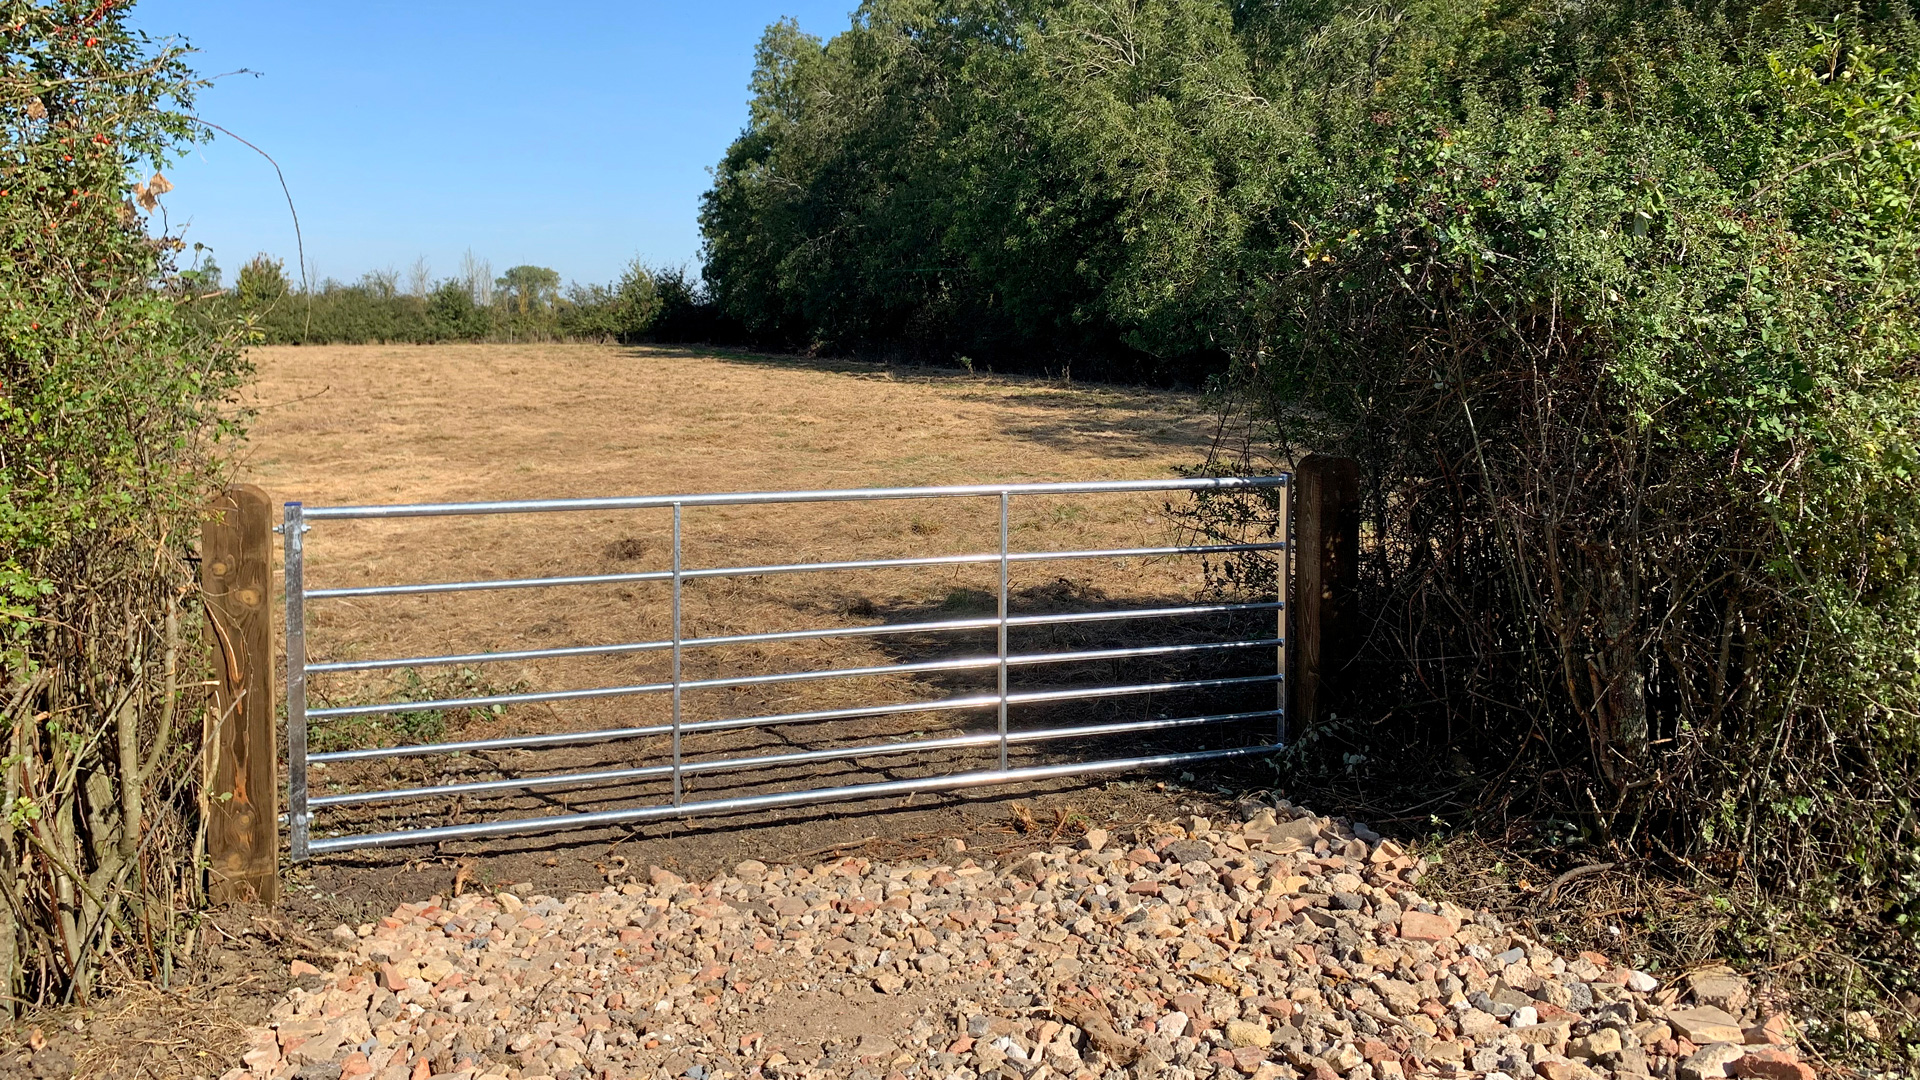 Land for sale at Draytonmead Farm private access to Lot 3